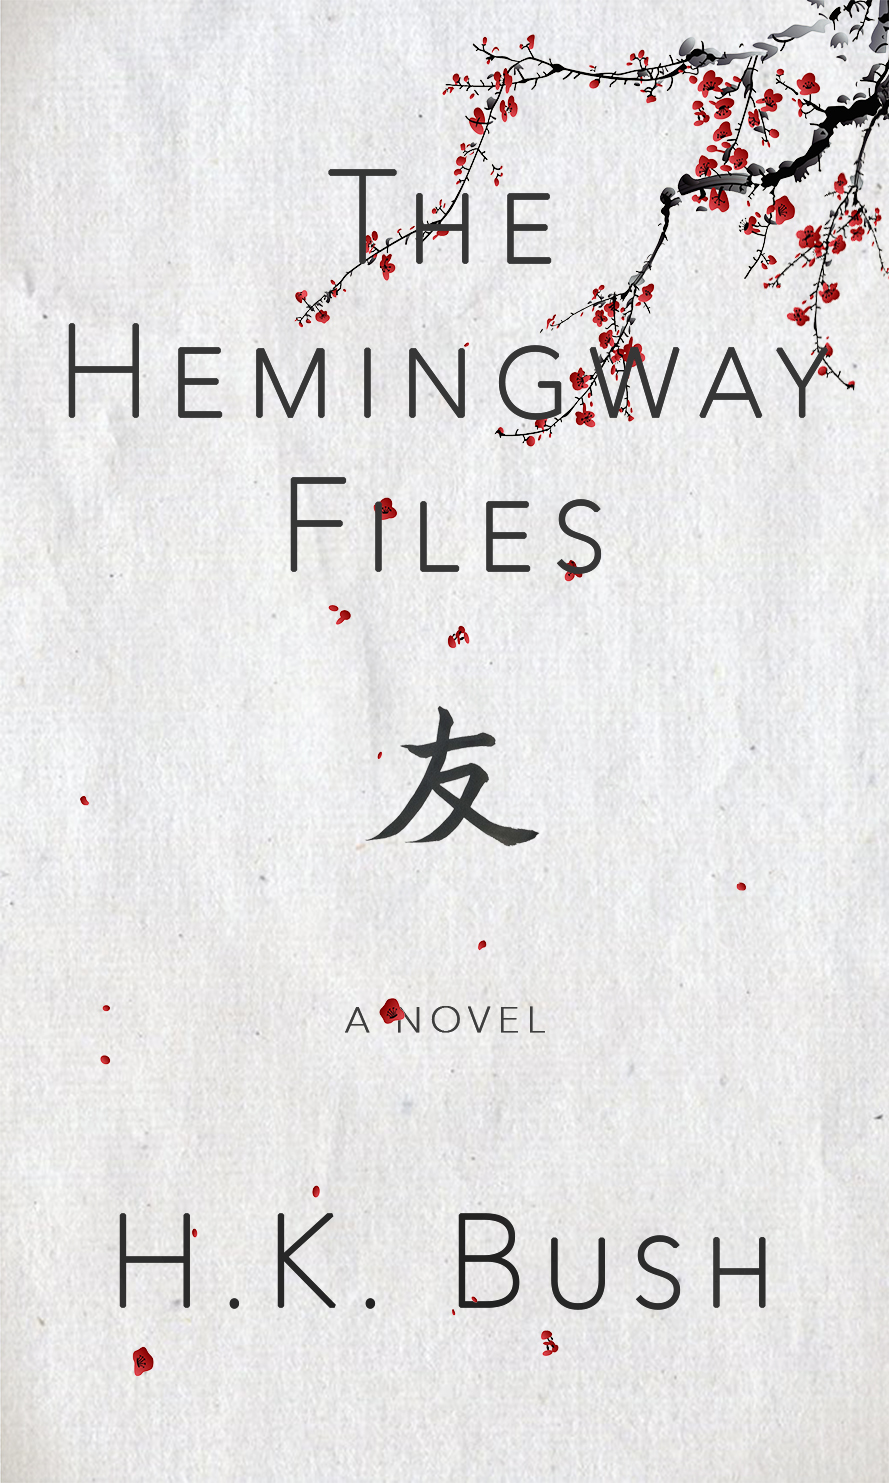 The Hemingway Files